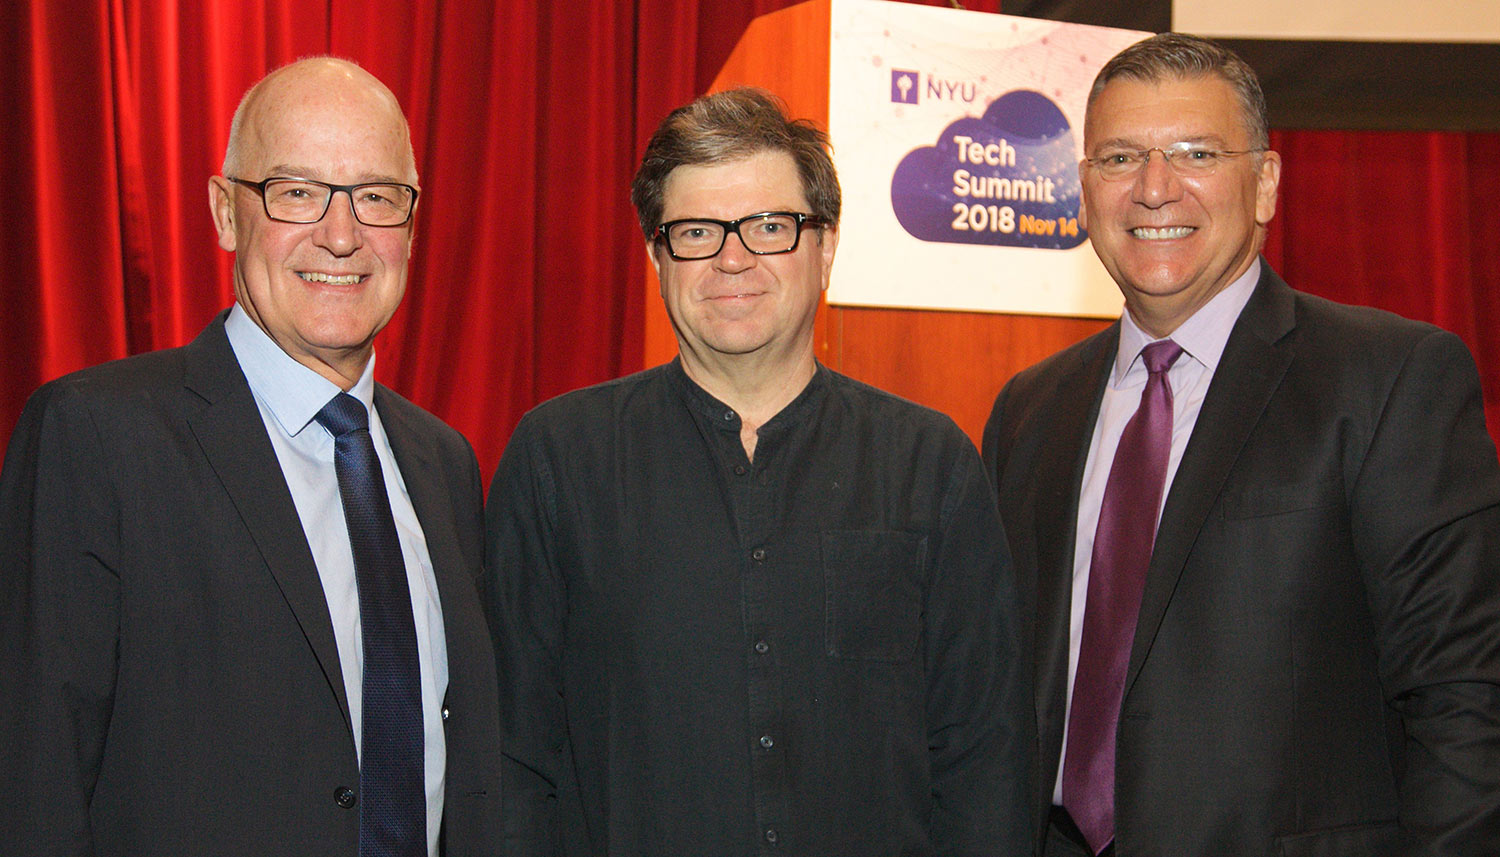 NYU President Andy Hamilton, keynote speaker Yann LeCun, and NYU CIO Len Peters in front of a red curtain at the NYU Technology Summit